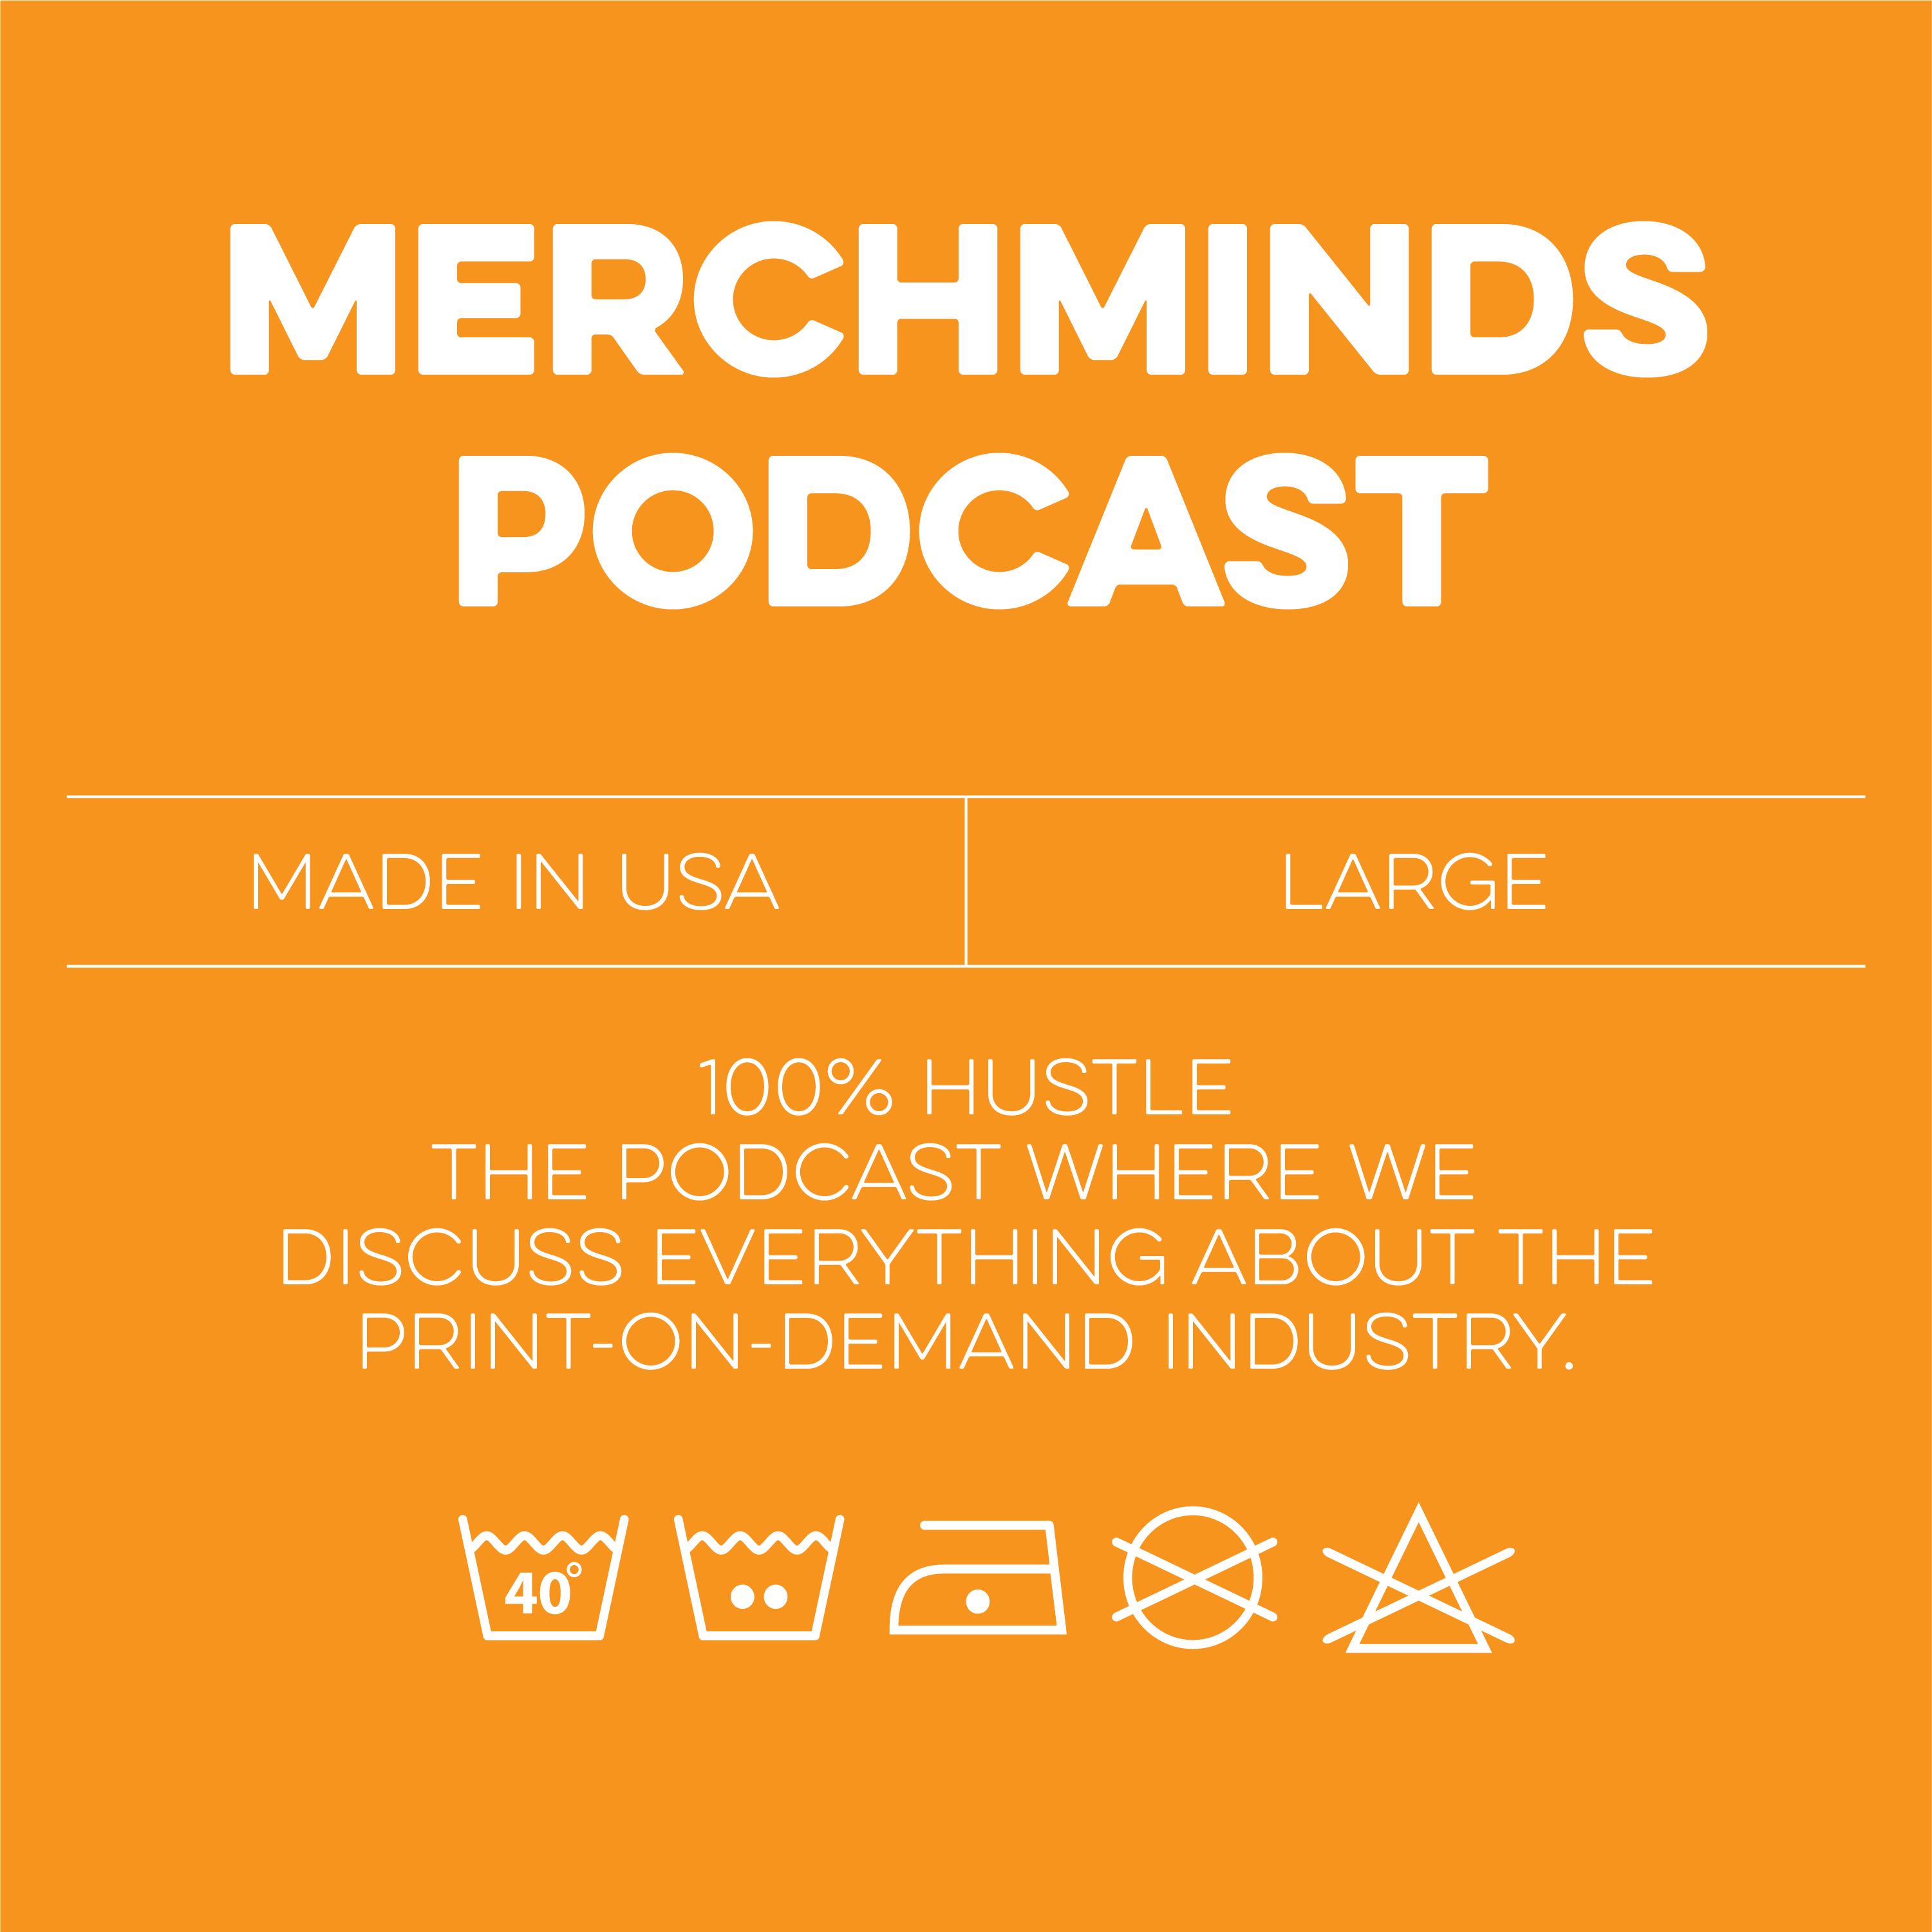 Merch Minds Podcast - Episode 160: Discussing Trademarks With Dave Cadoff show art